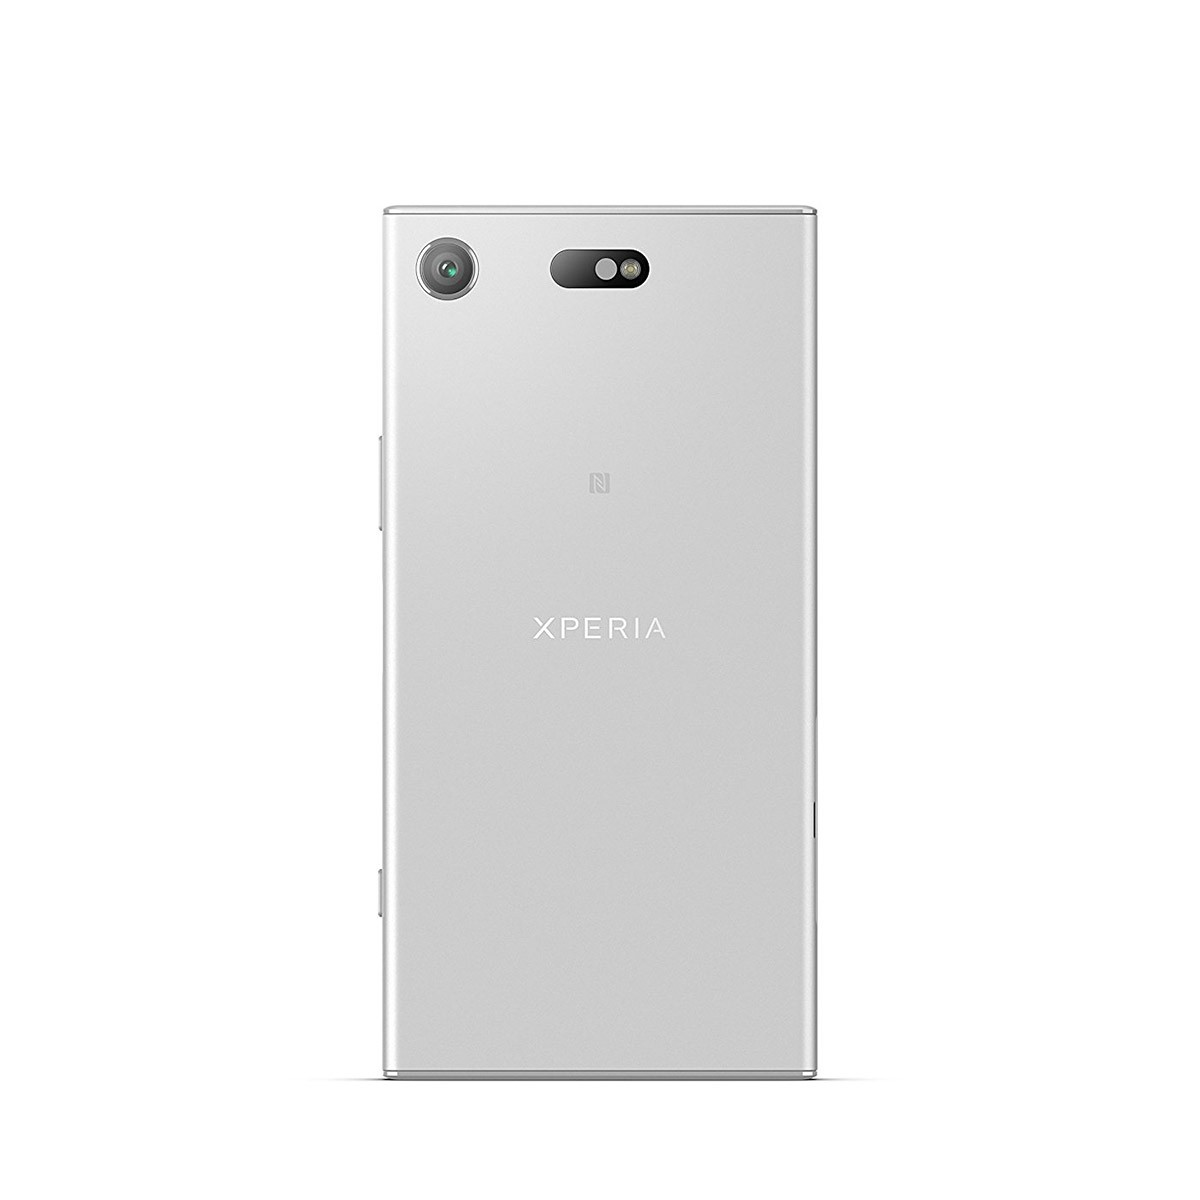 Xperia XZ2 Compact - Factory Unlocked Phone - 4.6